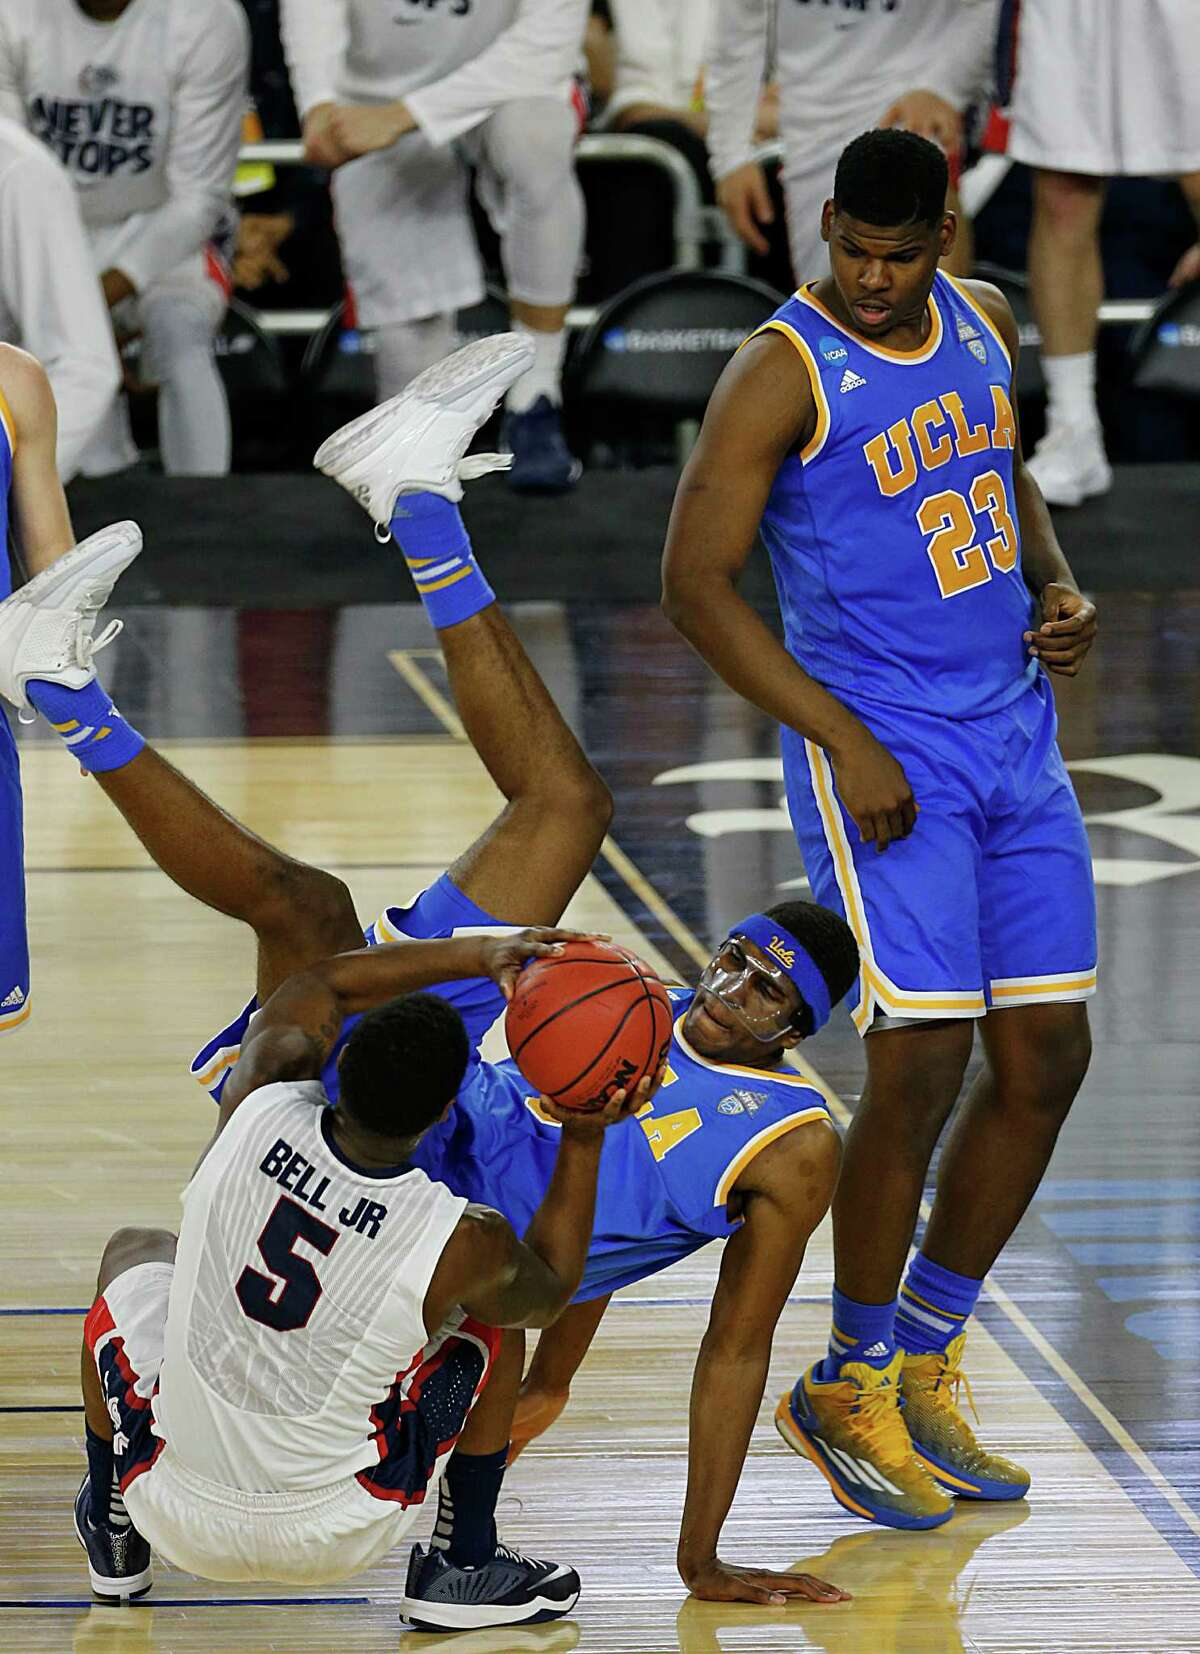 UCLA Bruins forward Kevon Looney center, falls onto Gonzaga Bulldogs guard Gary Bell Jr. left, as UCLA's Tony Parker right, looks on during the second half of the NCAA South Regional semifinal game at NRG Stadium Friday, March 27, 2015, in Houston. ( James Nielsen / Houston Chronicle )